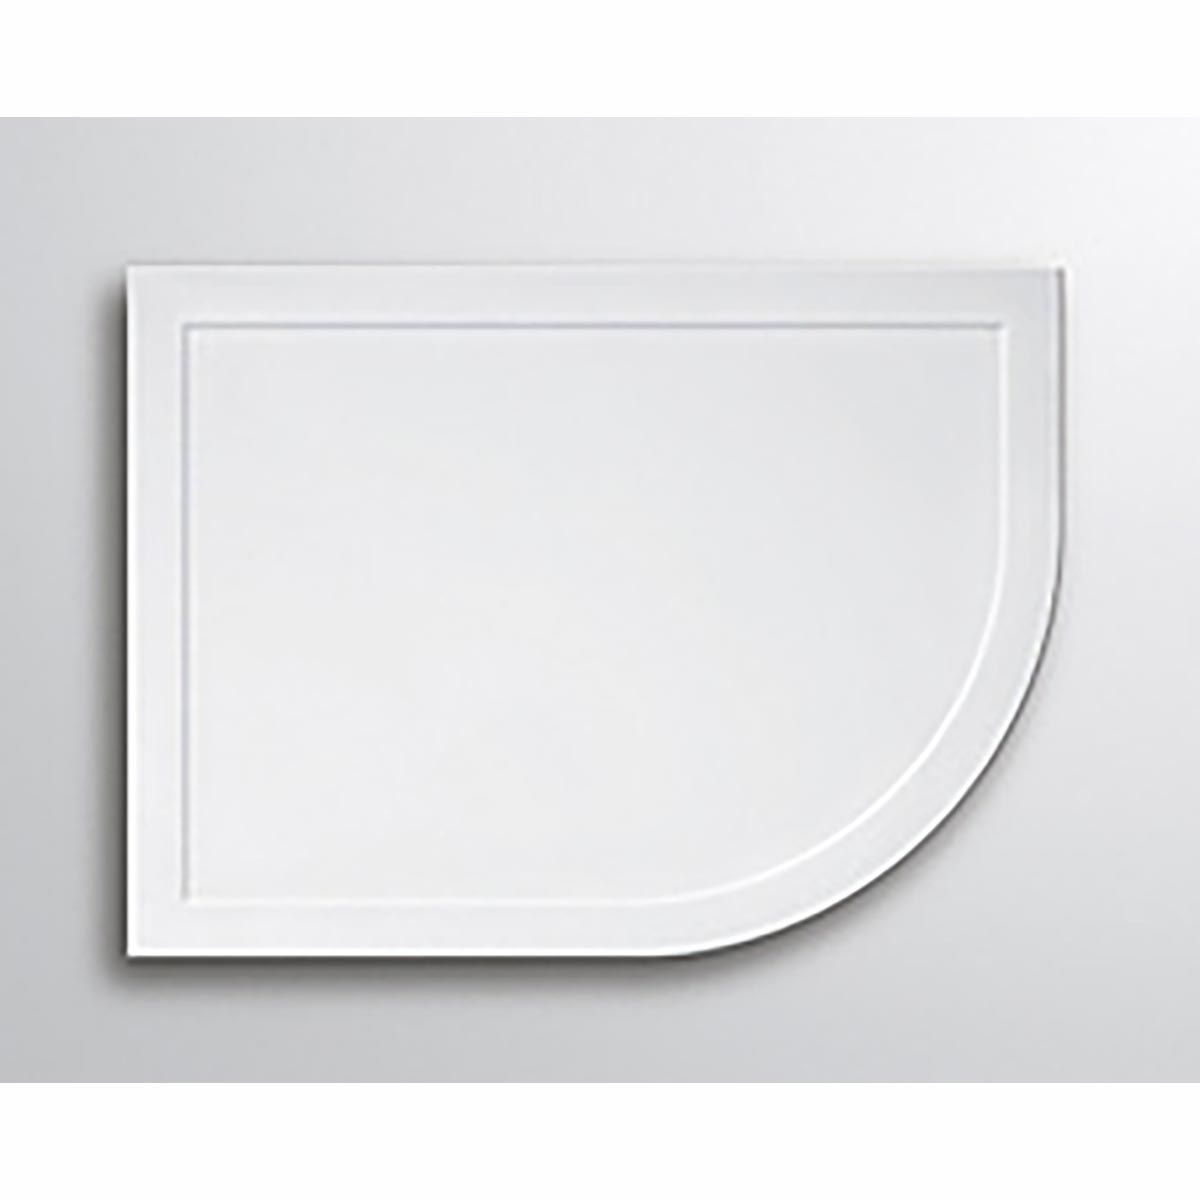 Lakes White Stone Resin/ABS Offset Quadrant Tray Right Hand 900mm X 800mm